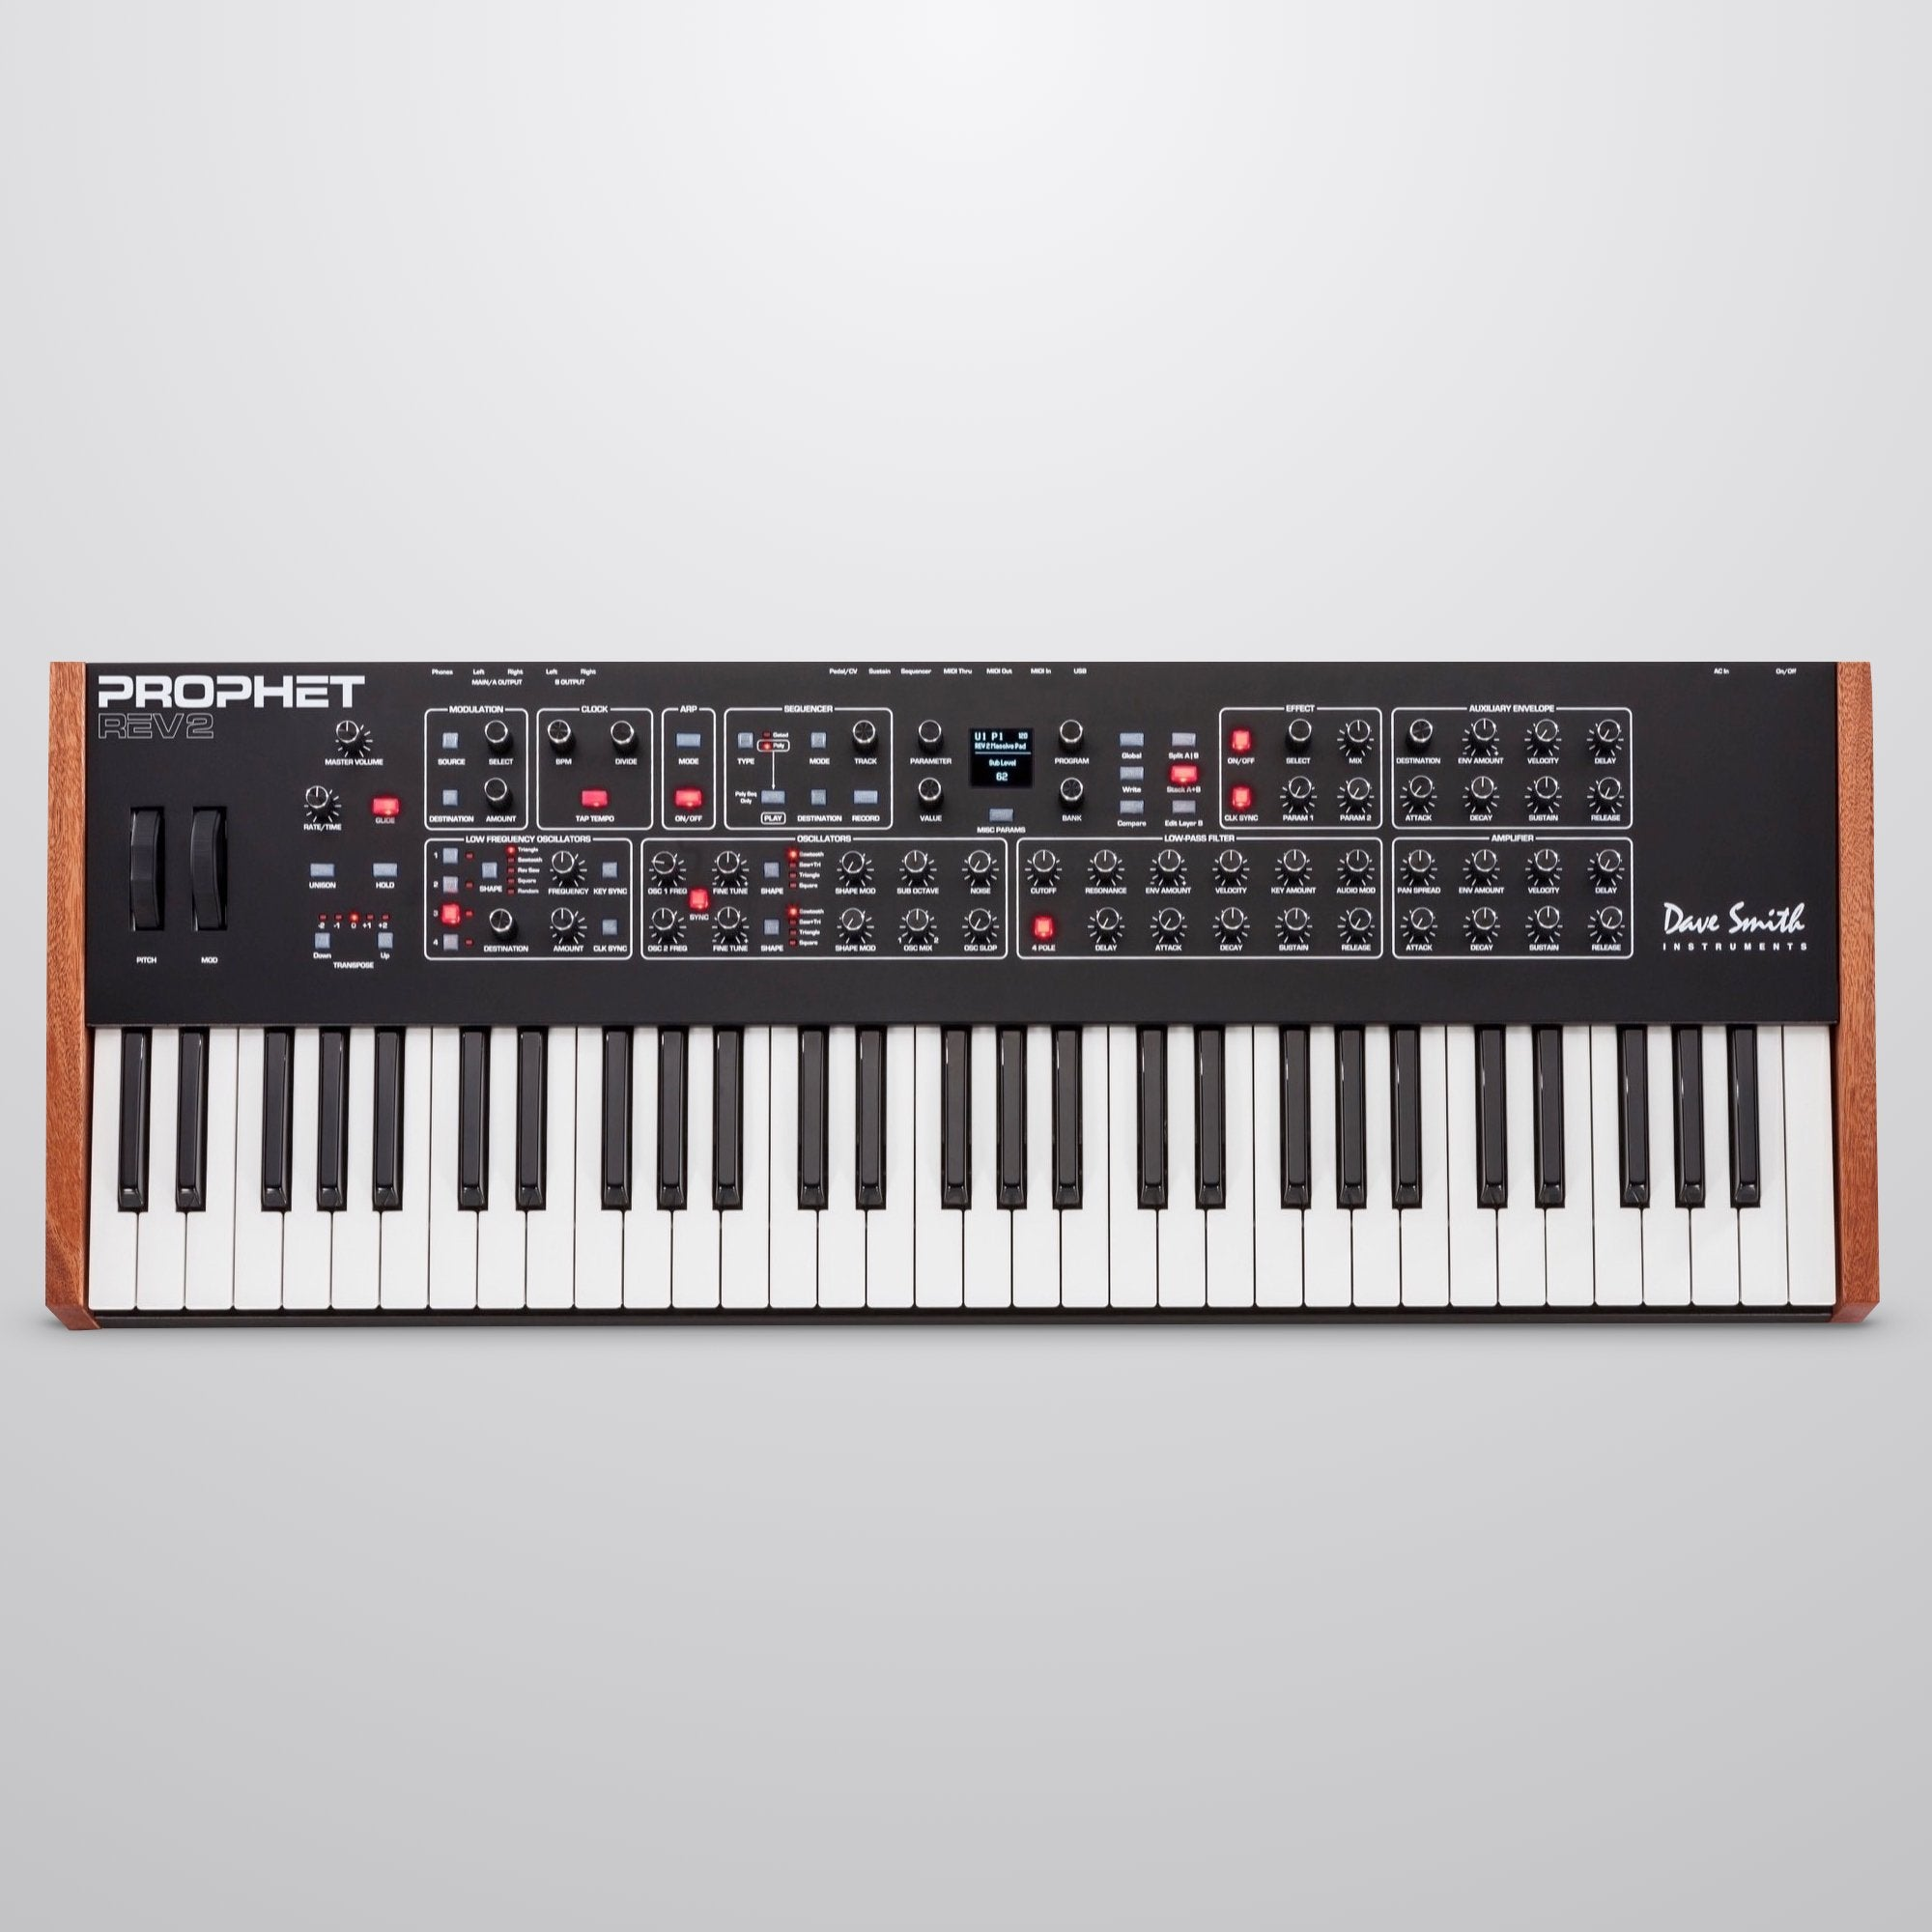 Dave Smith Prophet Rev2-08 8-Voice Analog Synthesizer, 61-Key